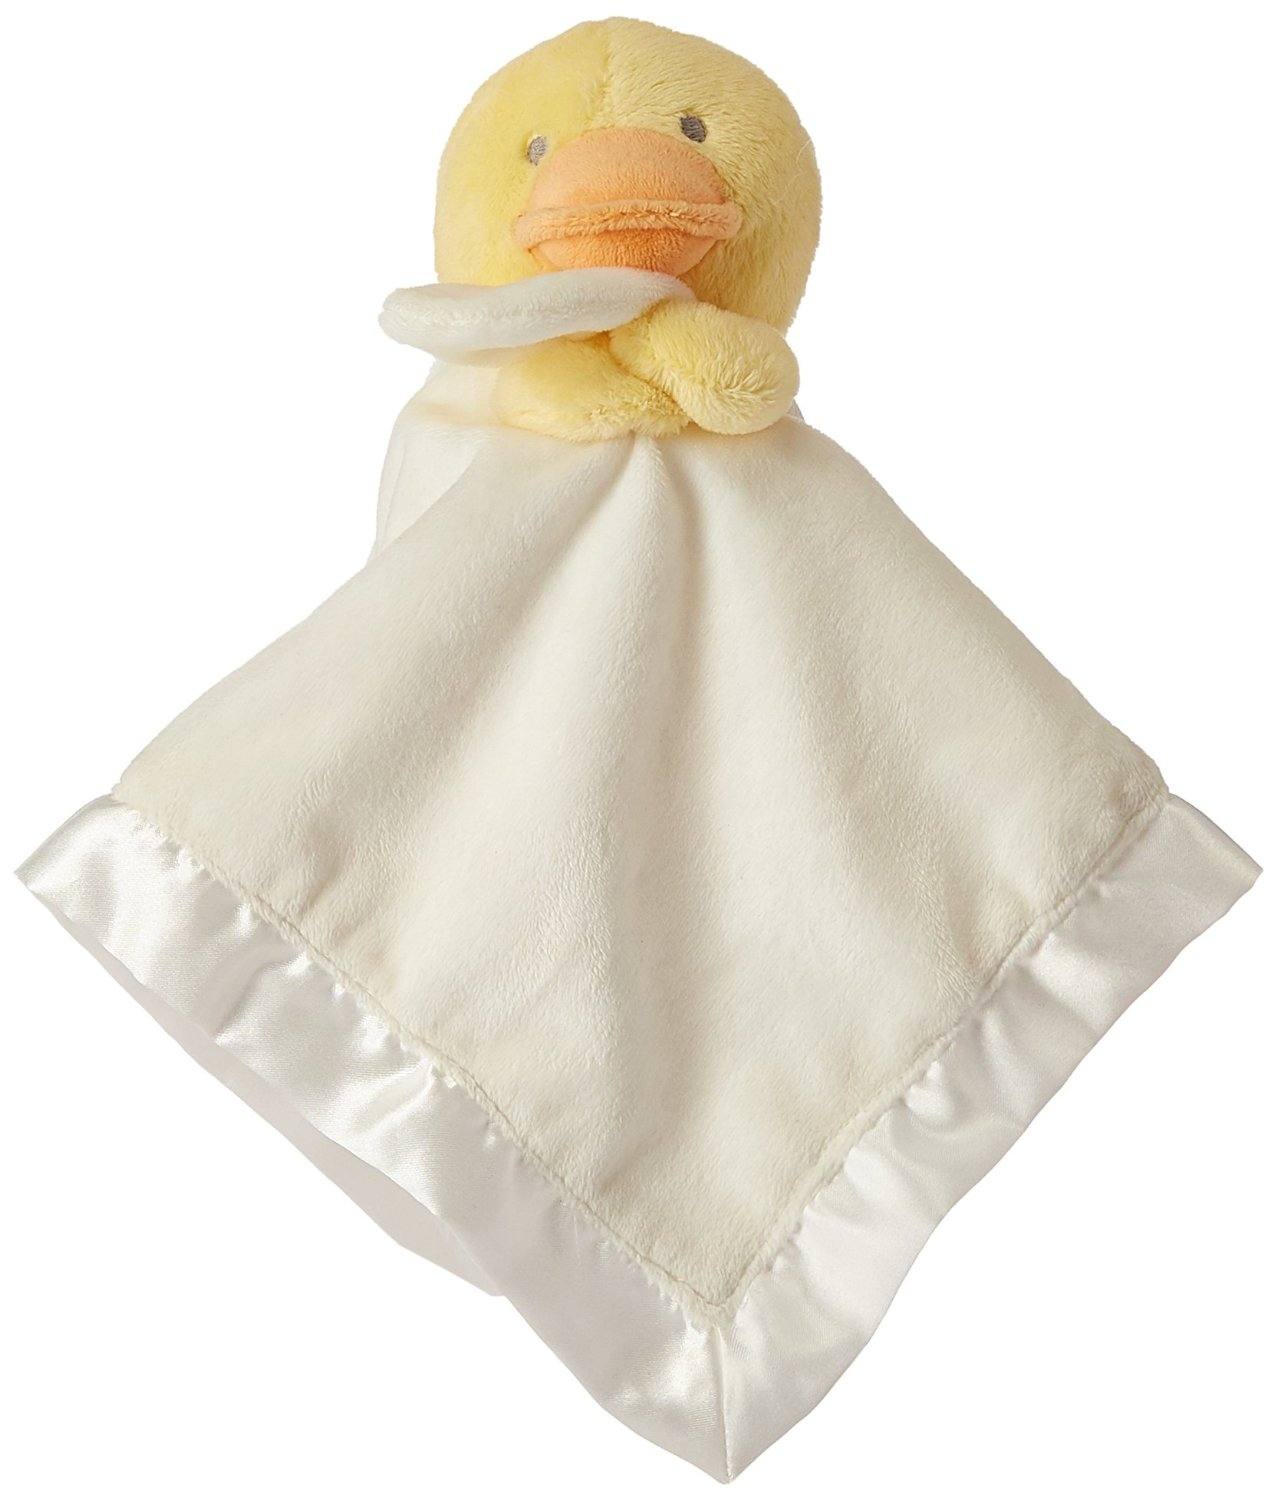 Carter's Baby Boys Girls Plush Duck Security Blanket, Lovey, Lovie